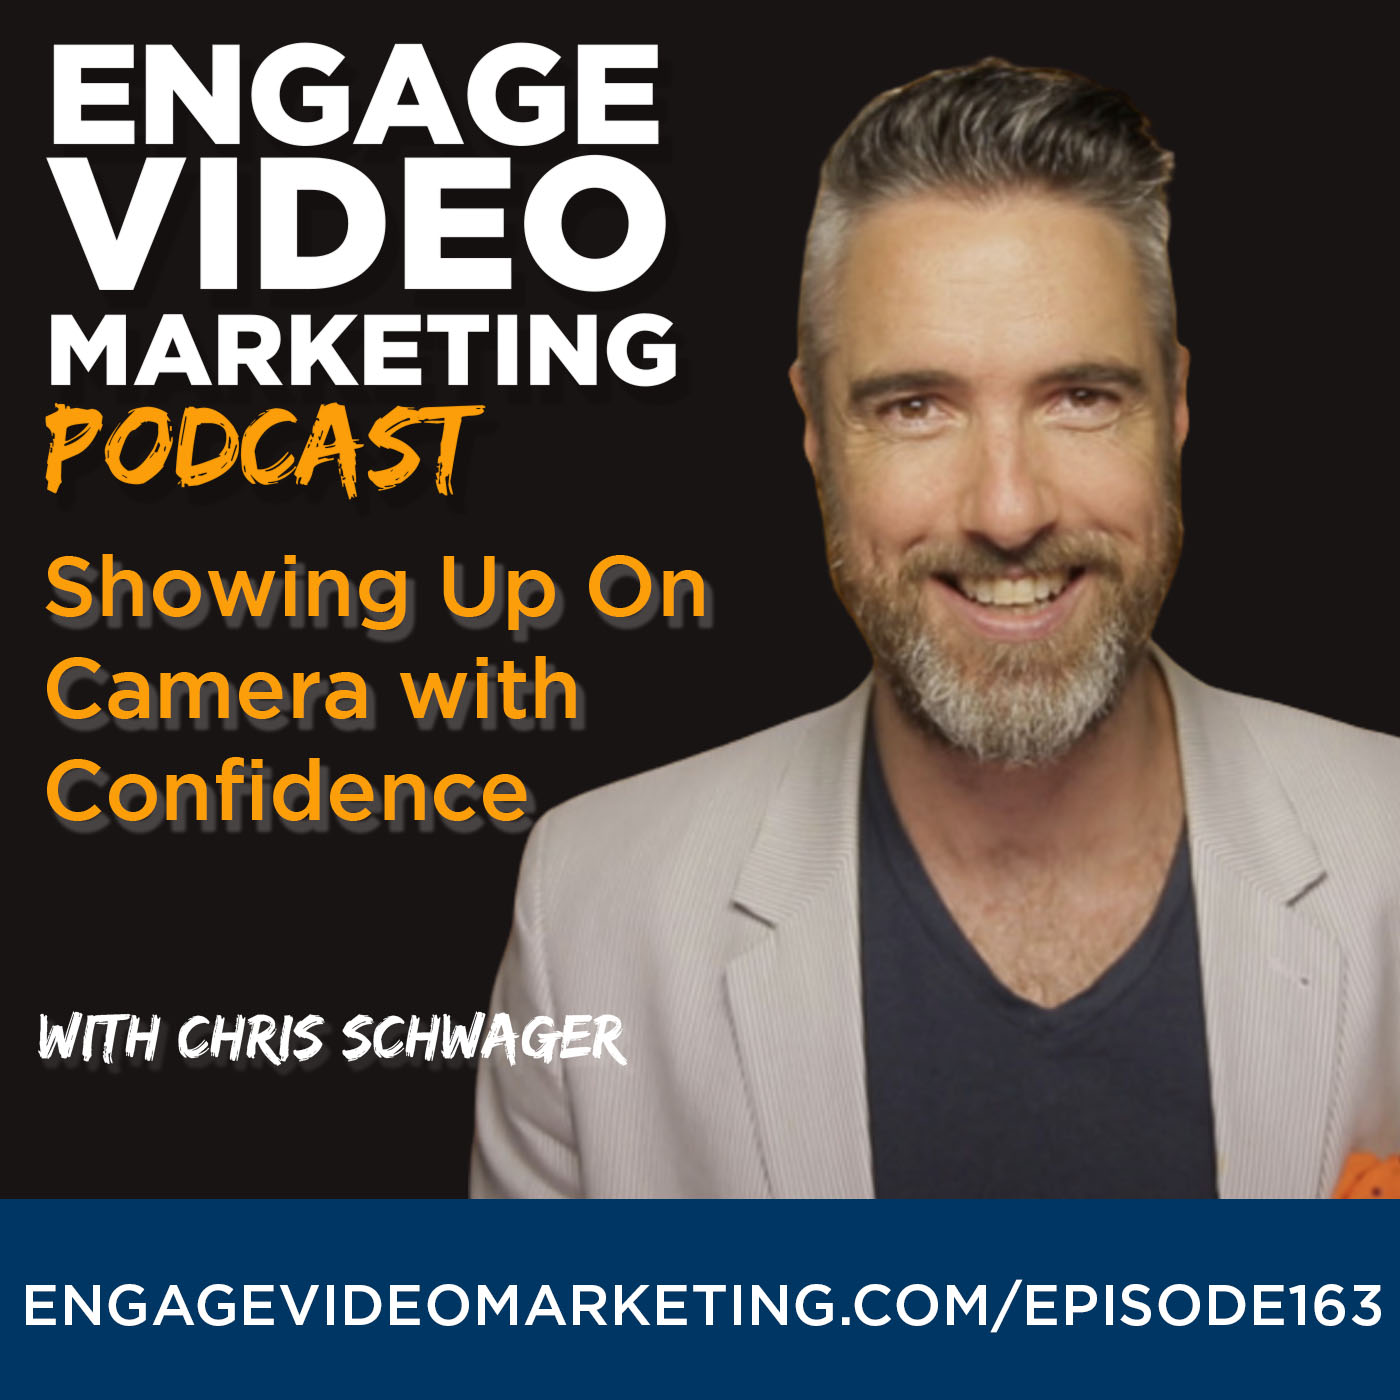 Showing Up On Camera with Confidence with Chris Schwager